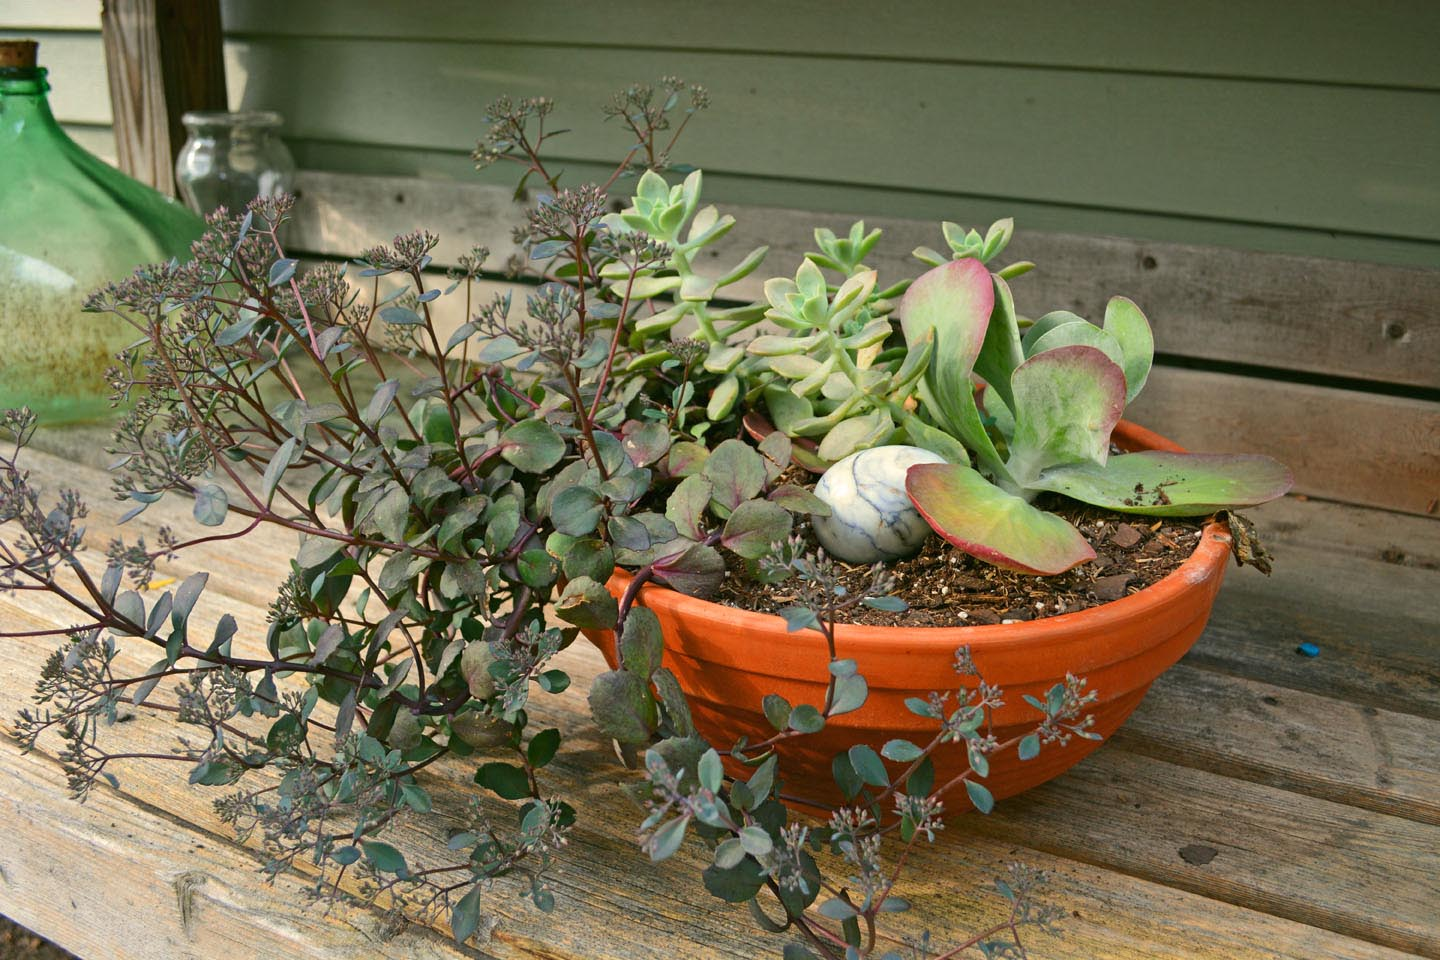 Succulent Gardens in Containers